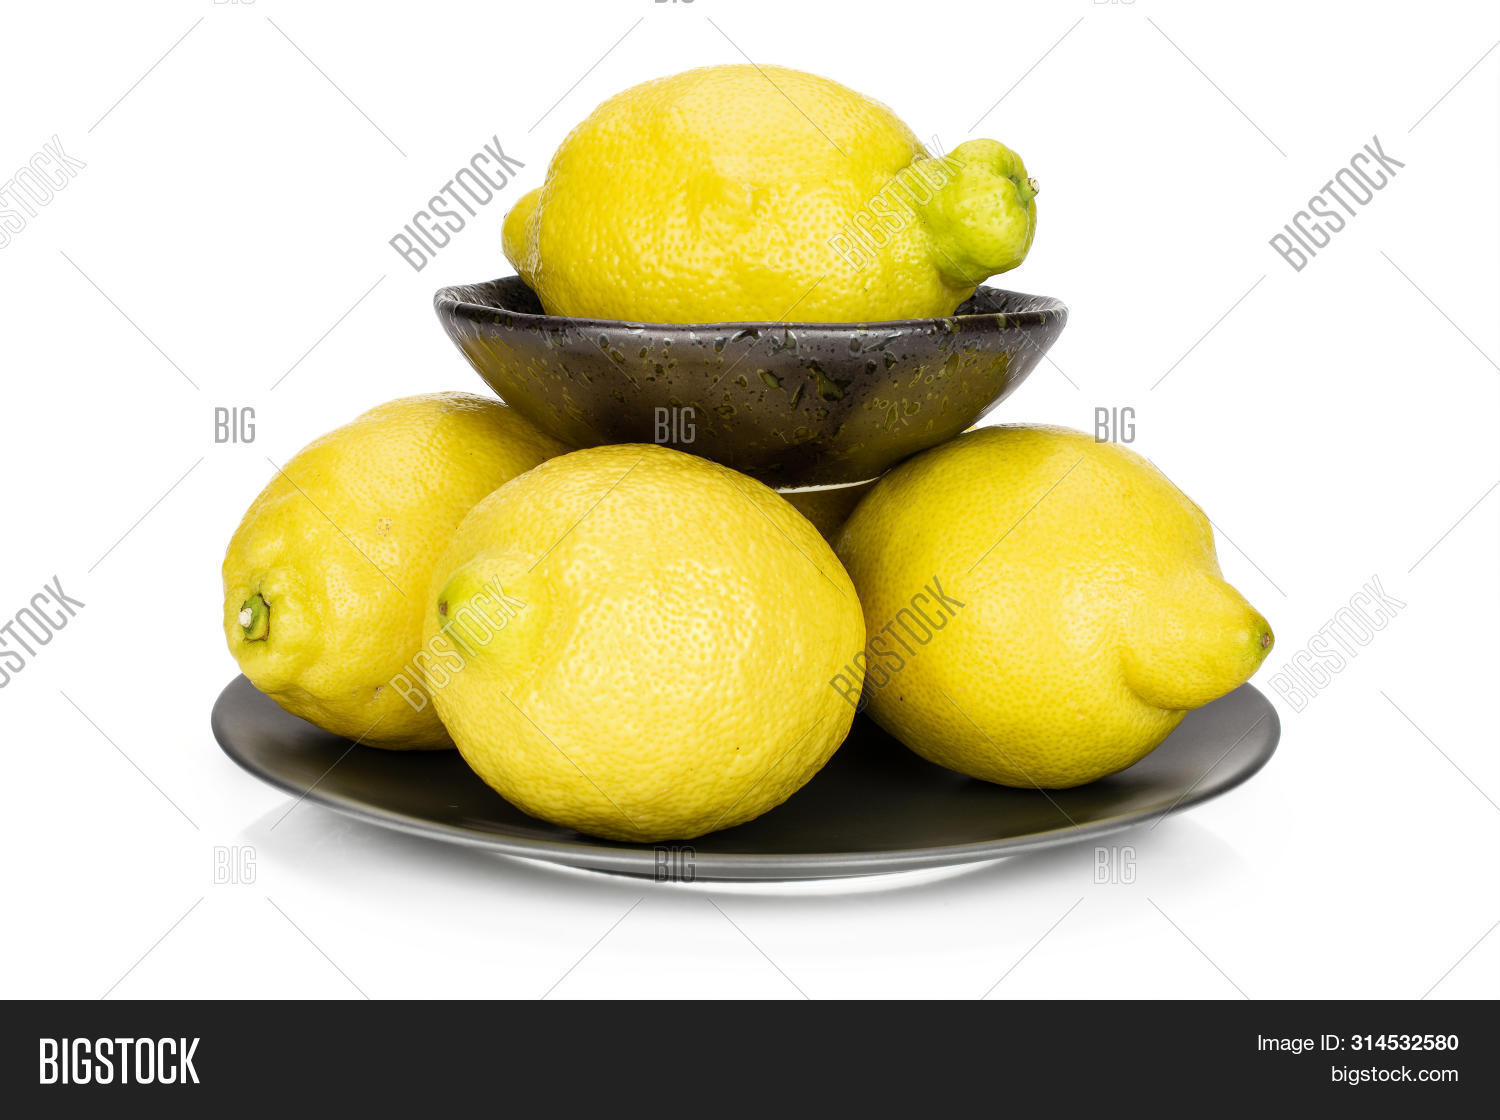 4,acid,background,beautiful,best,bowl,bright,brilliant,ceramic,chromatic,citric,citron,citrus,close,dark,deep,excellent,exotic,fine,food,four,fresh,fruit,glossy,glowing,grey,intense,isolated,juicy,lemon,light,limonade,limoncello,little,lovely,mature,pale,plate,raw,ripe,shiny,small,sour,subtropical,sunny,tropical,vivid,white,whole,yellow